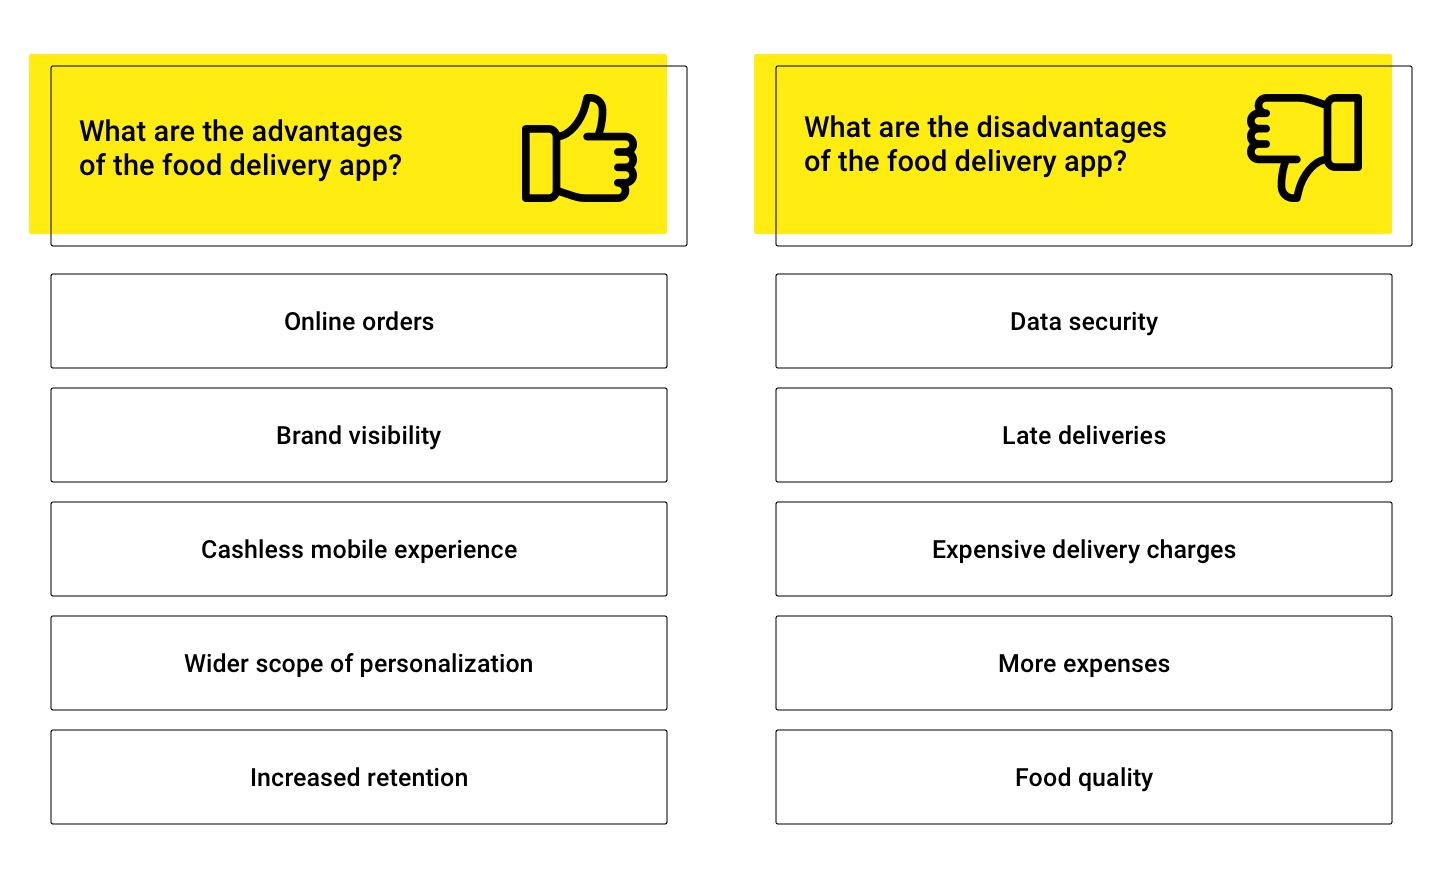 advantages and disadvantages of the food delivery app